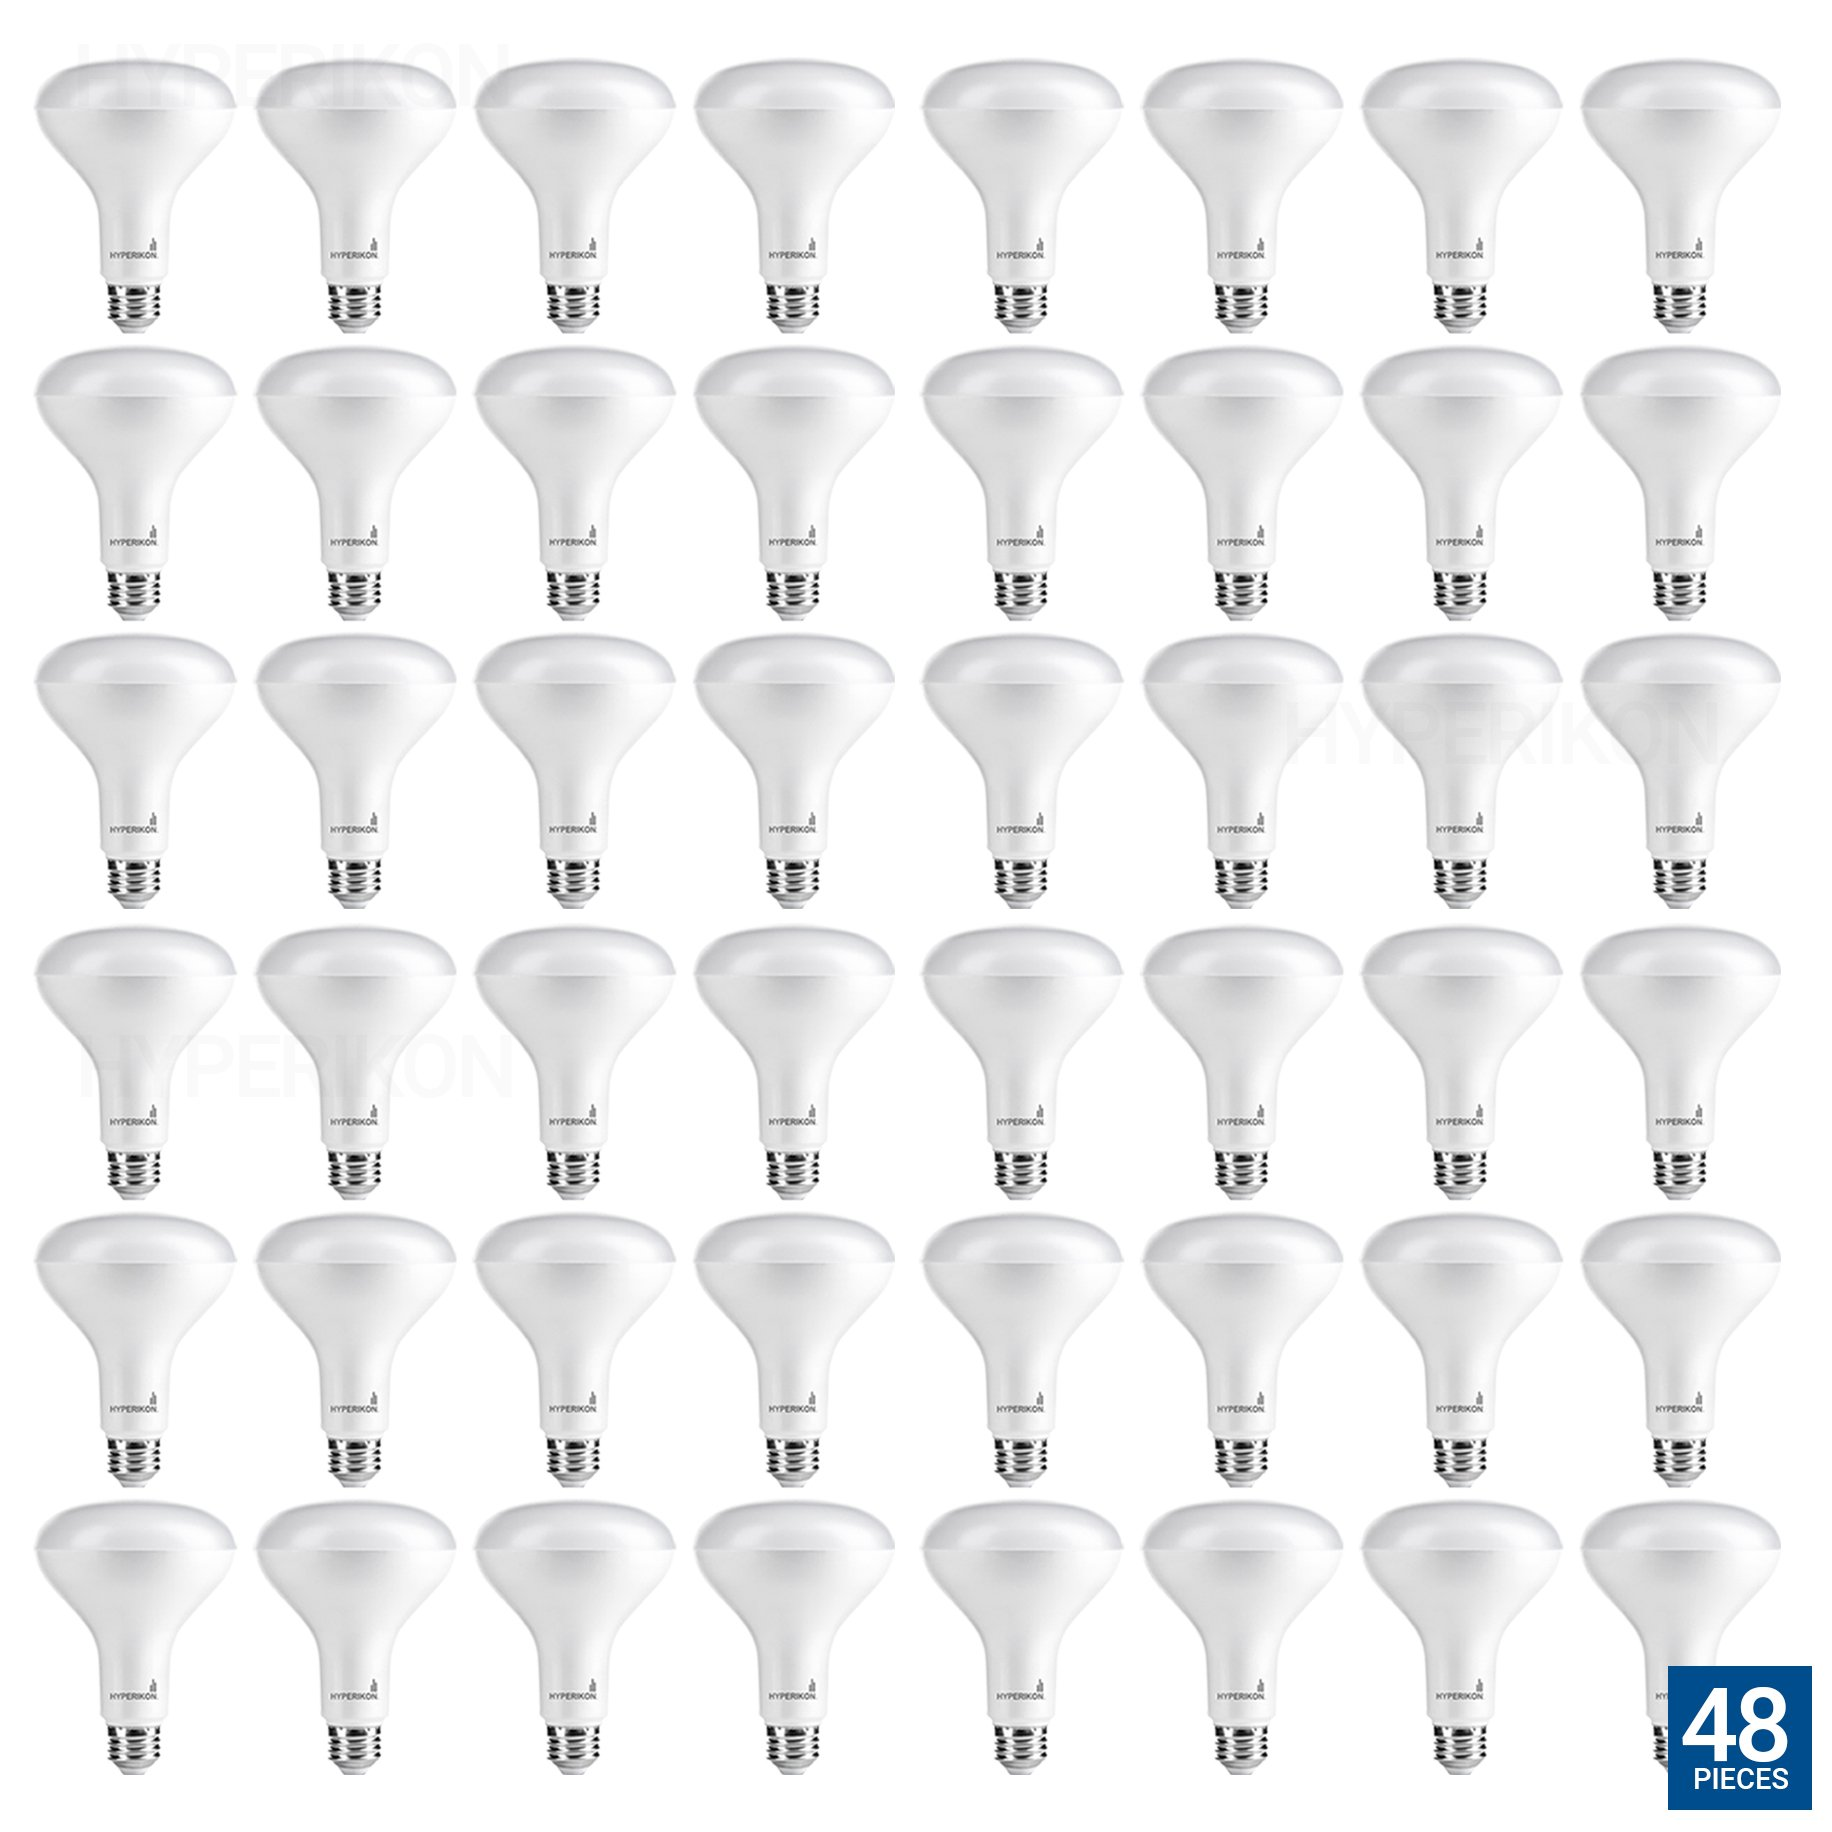 Hyperikon BR30 LED Bulb Dimmable, 9W (65W Equivalent), 3000K (Soft White Glow), Wide Flood Light Bulb, Medium Base E26, UL & ENERGYSTAR - Great for Bedroom Lighting, Living Room, Dining Room (48 Pack) by Hyperikon